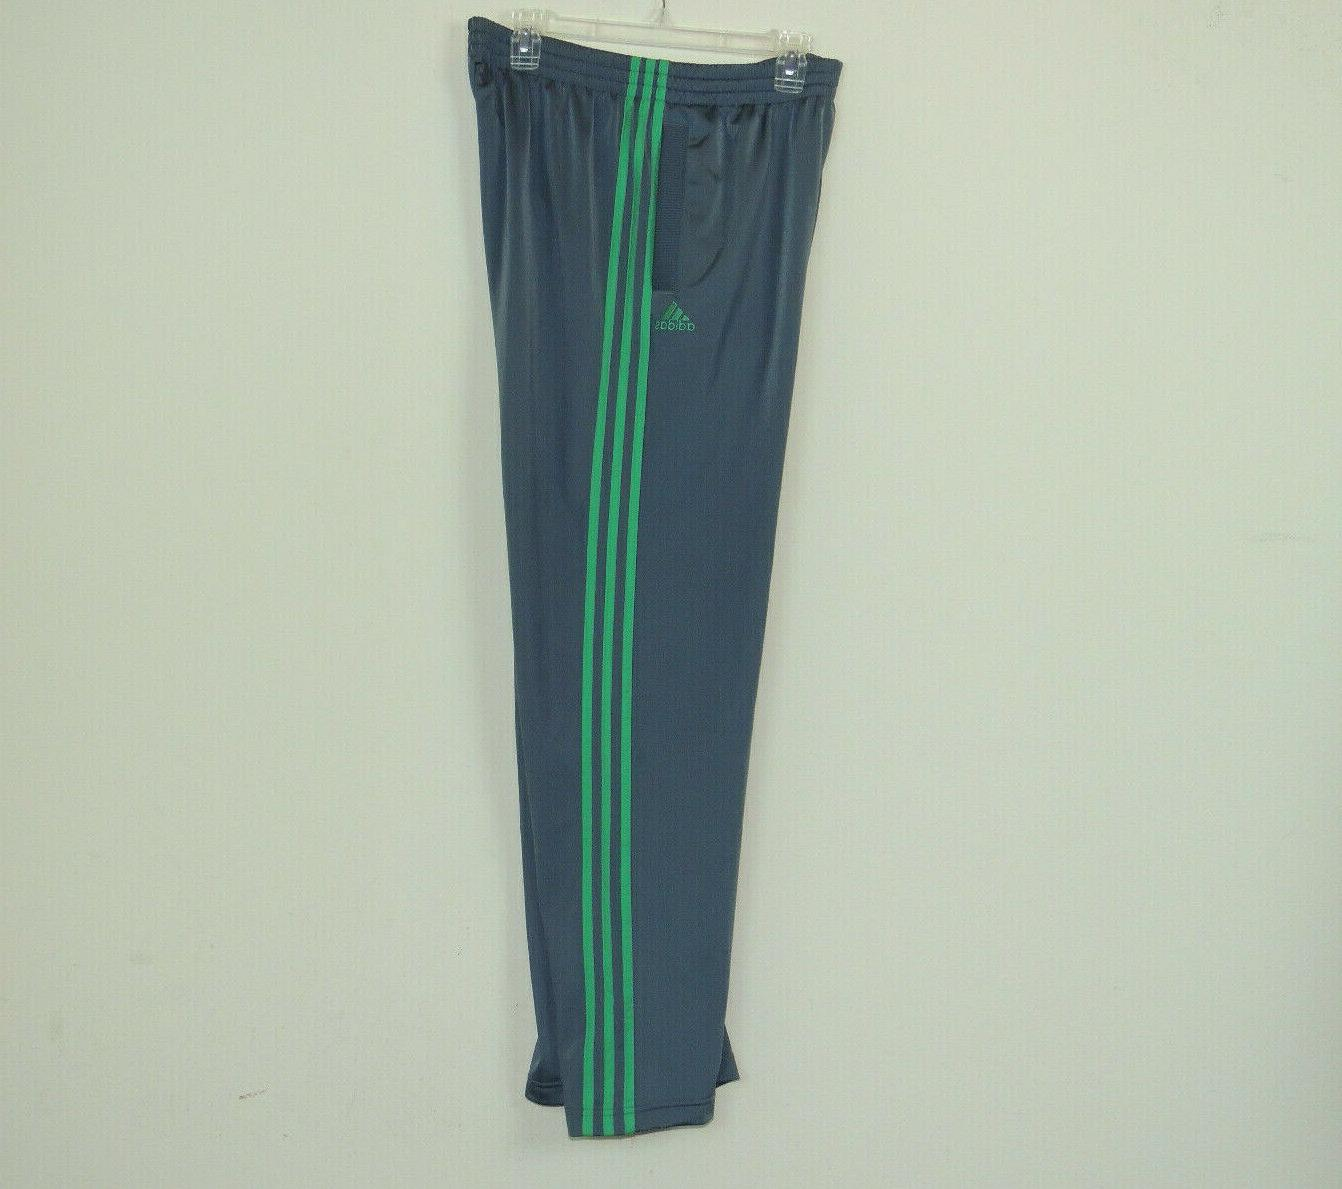 New Adidas Men's Basketball Gym VC Tracksuit Grey Green SZ 2XL